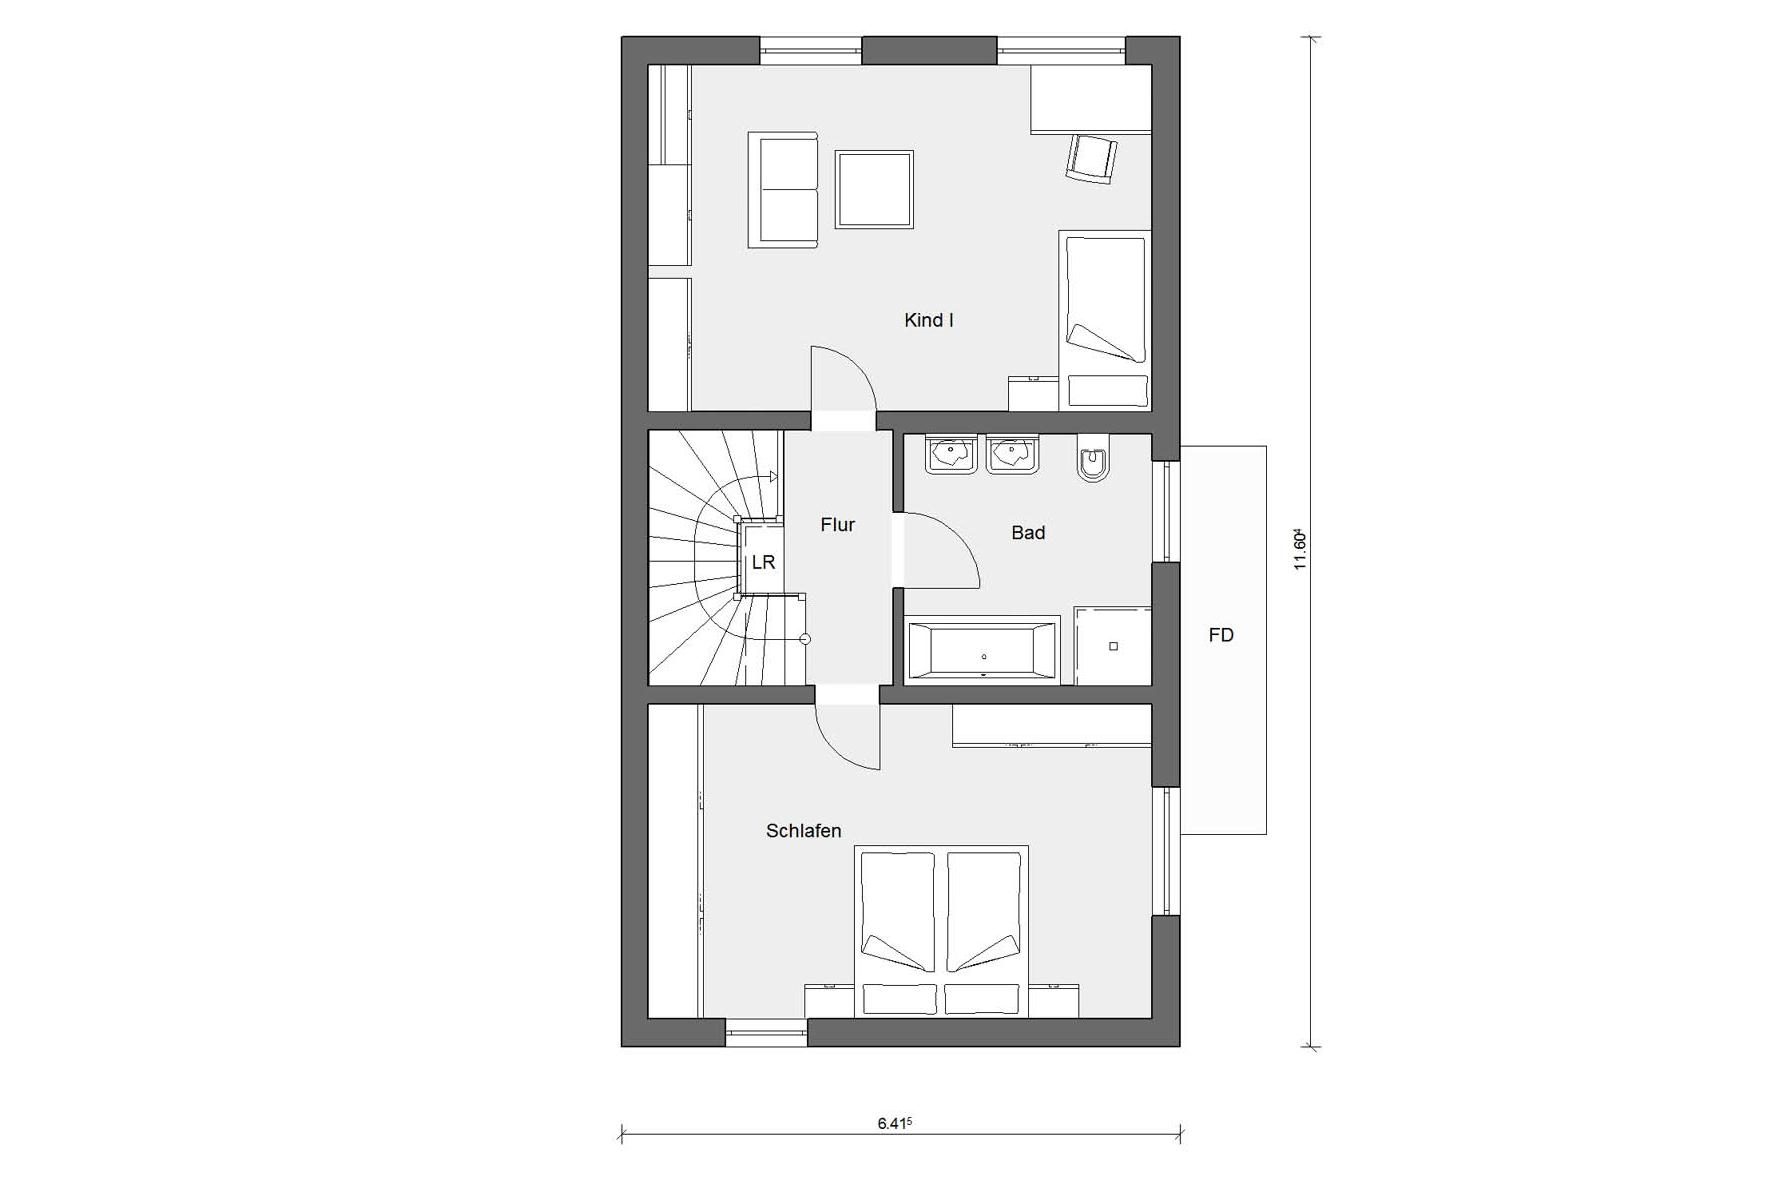 Ground floor first floor D 25-166.2 Semi-detached house with roof terrace